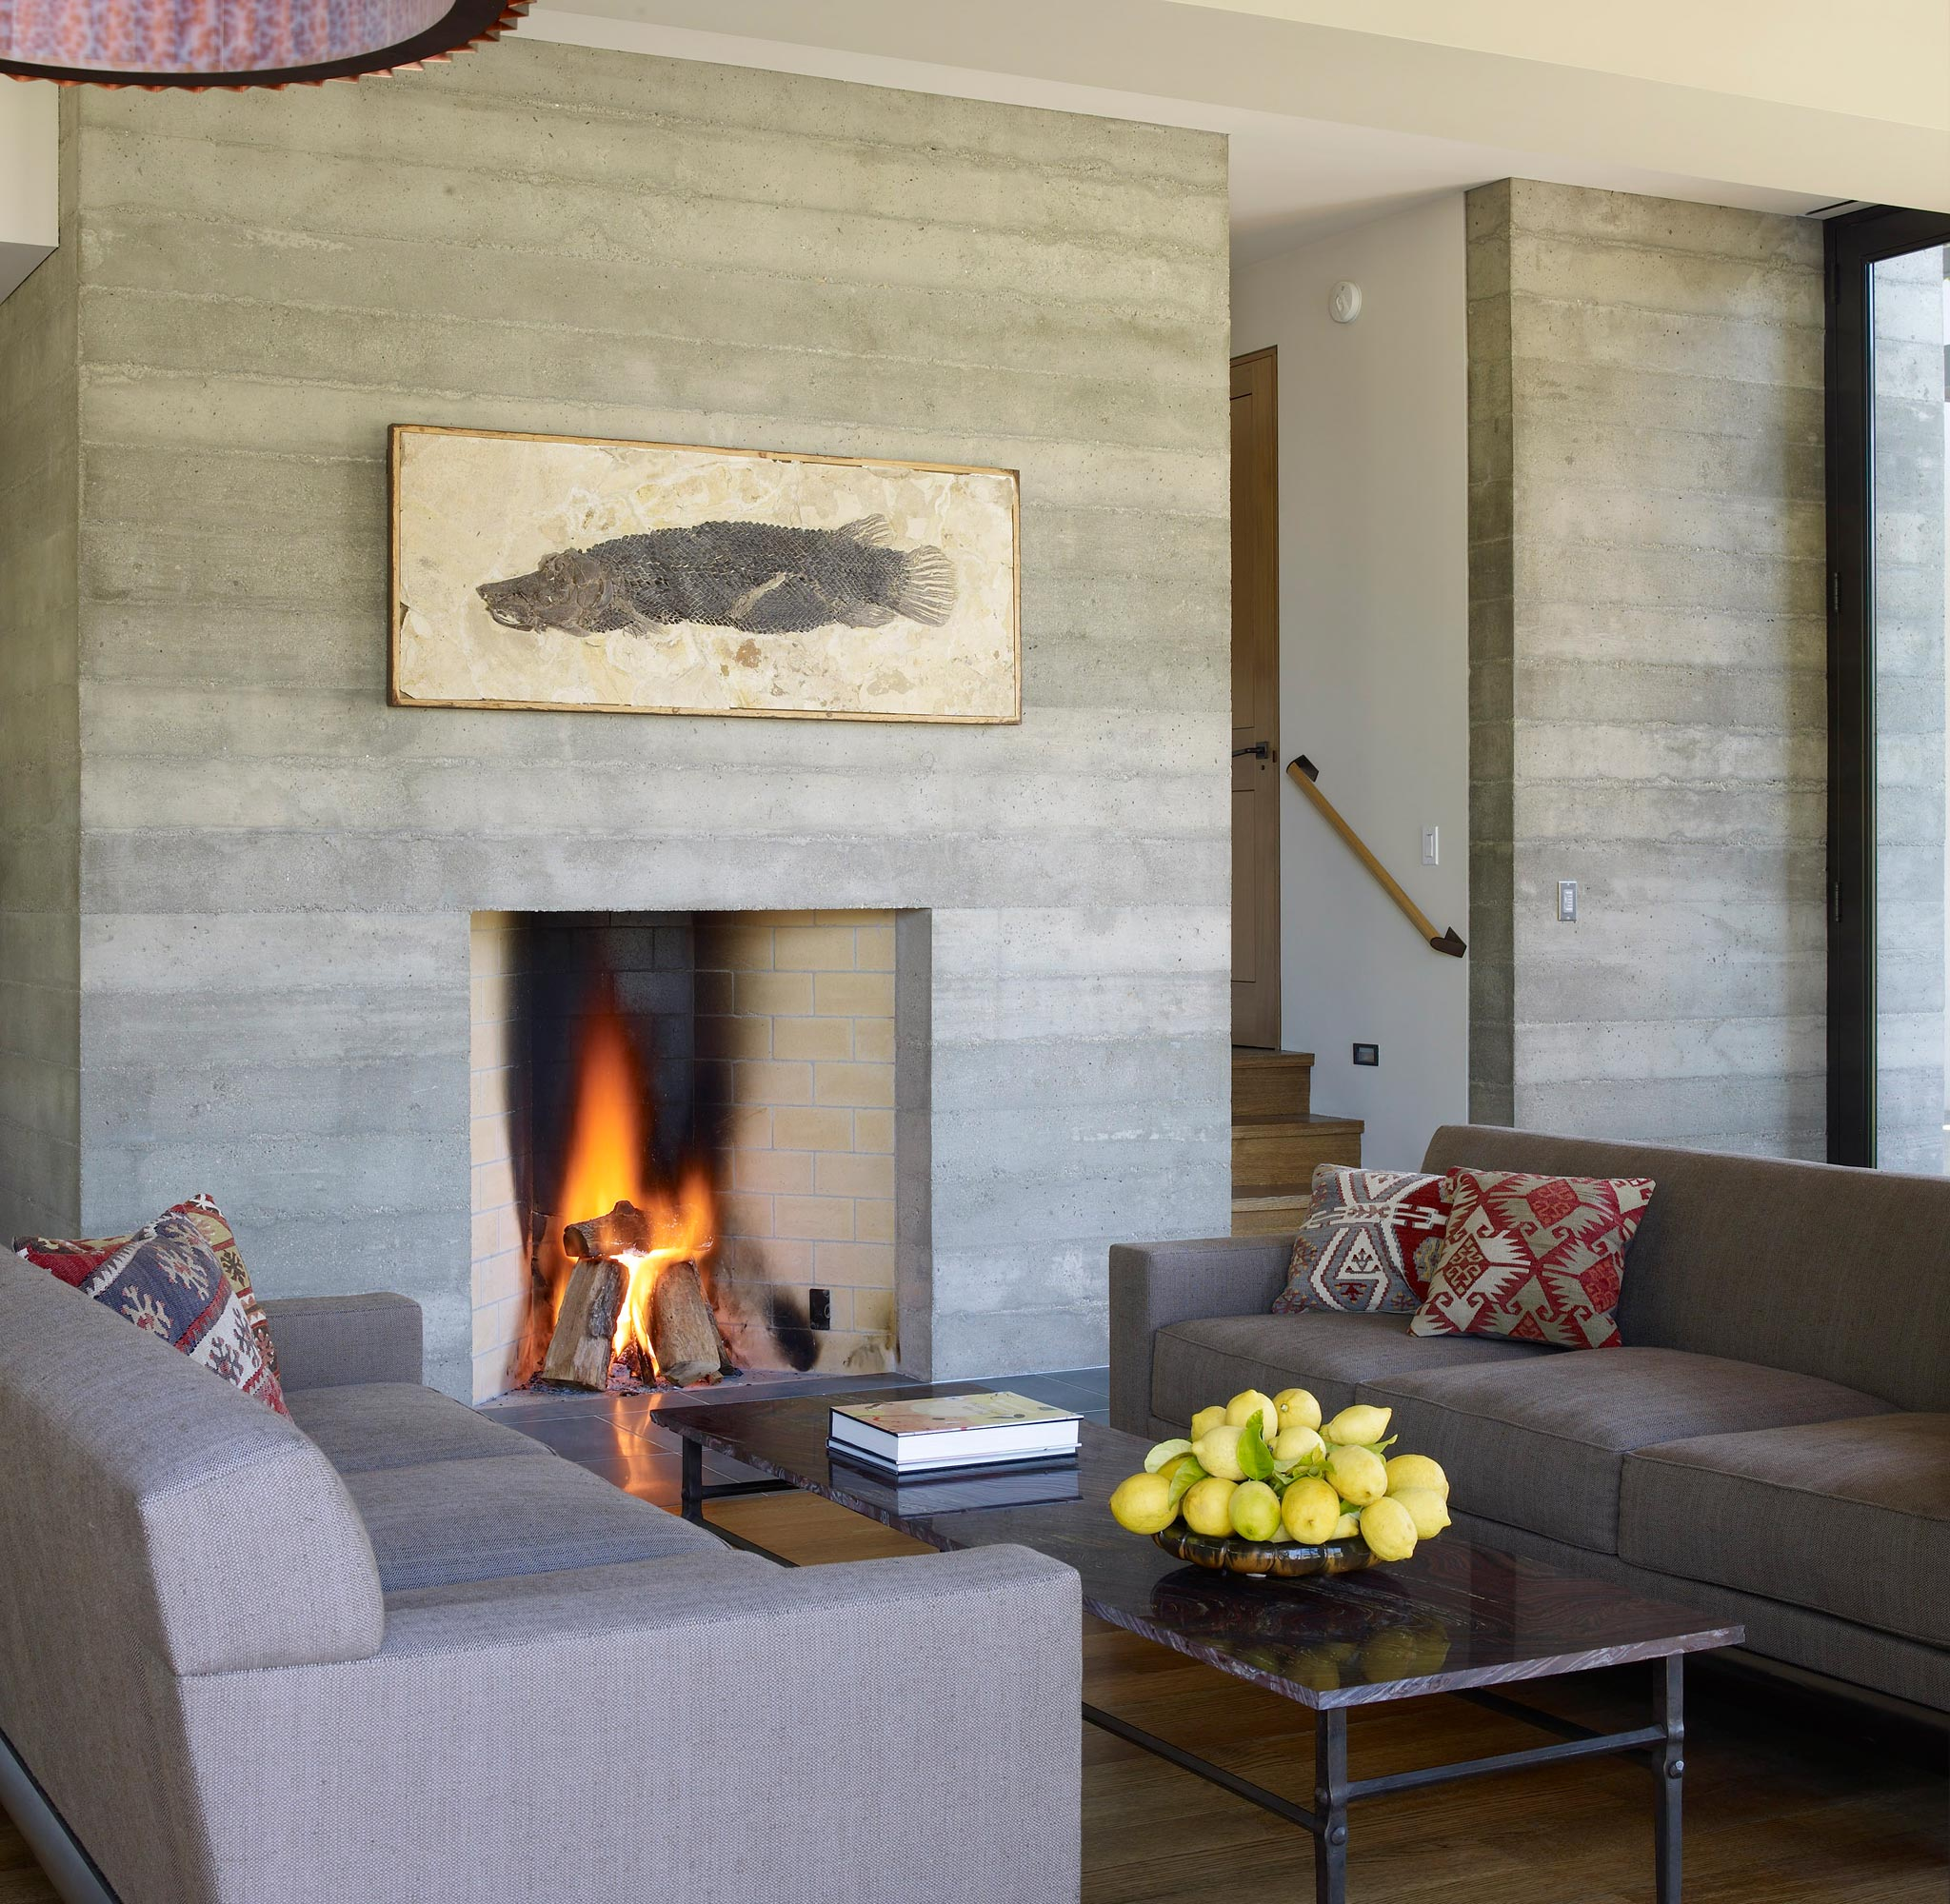 Claremont modern aesthetic pavillon house guest of living space with fireplace